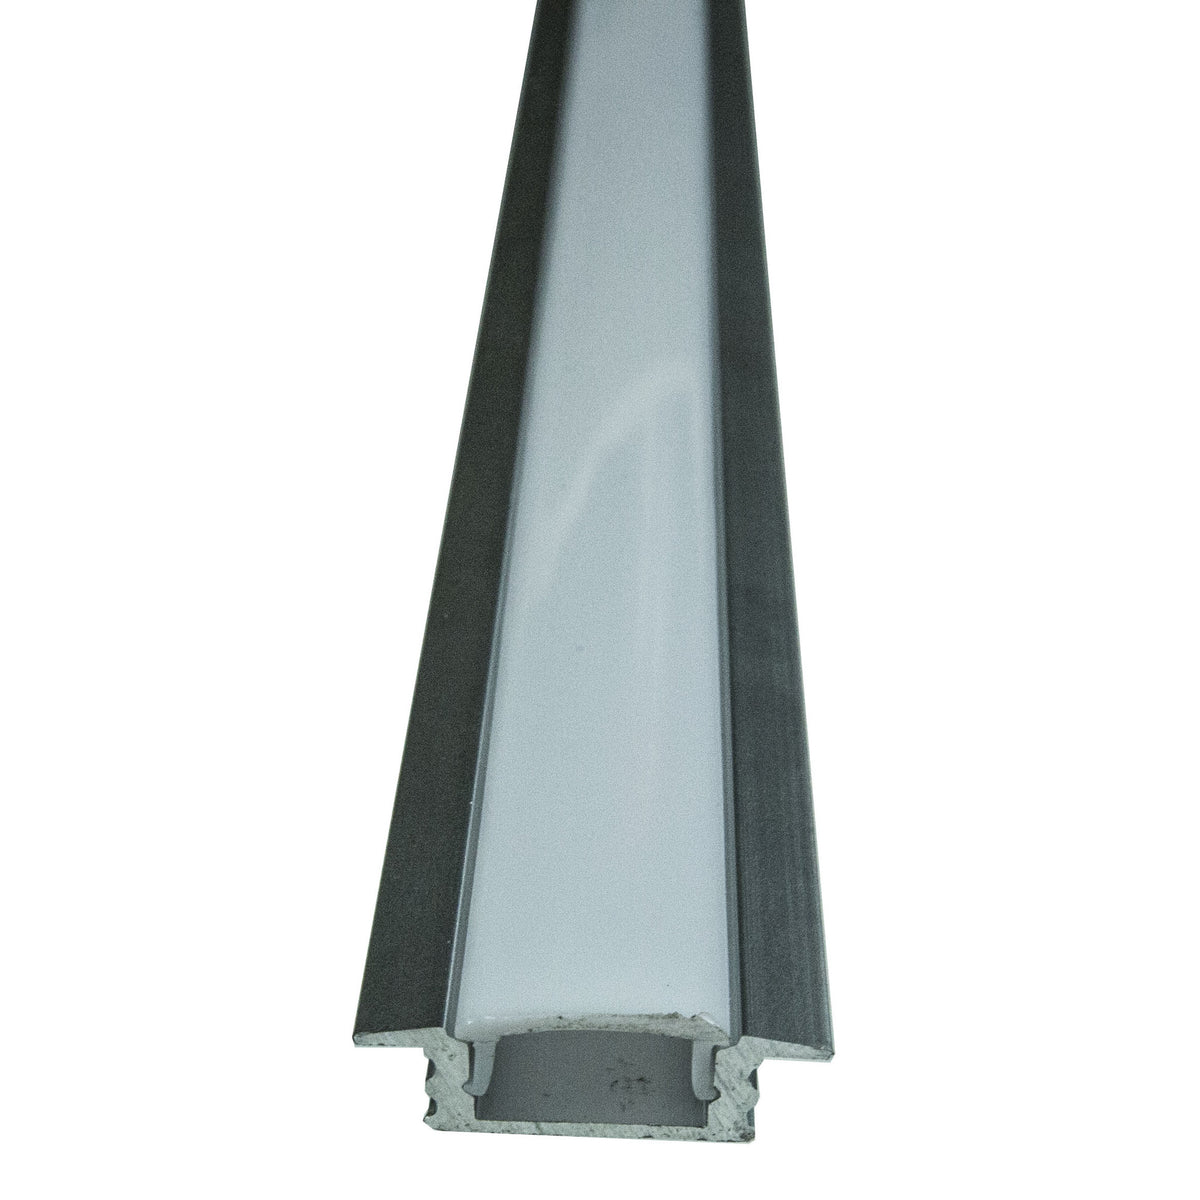 Aluminum Channel - MOSS-ALM-2507 - Moss LED